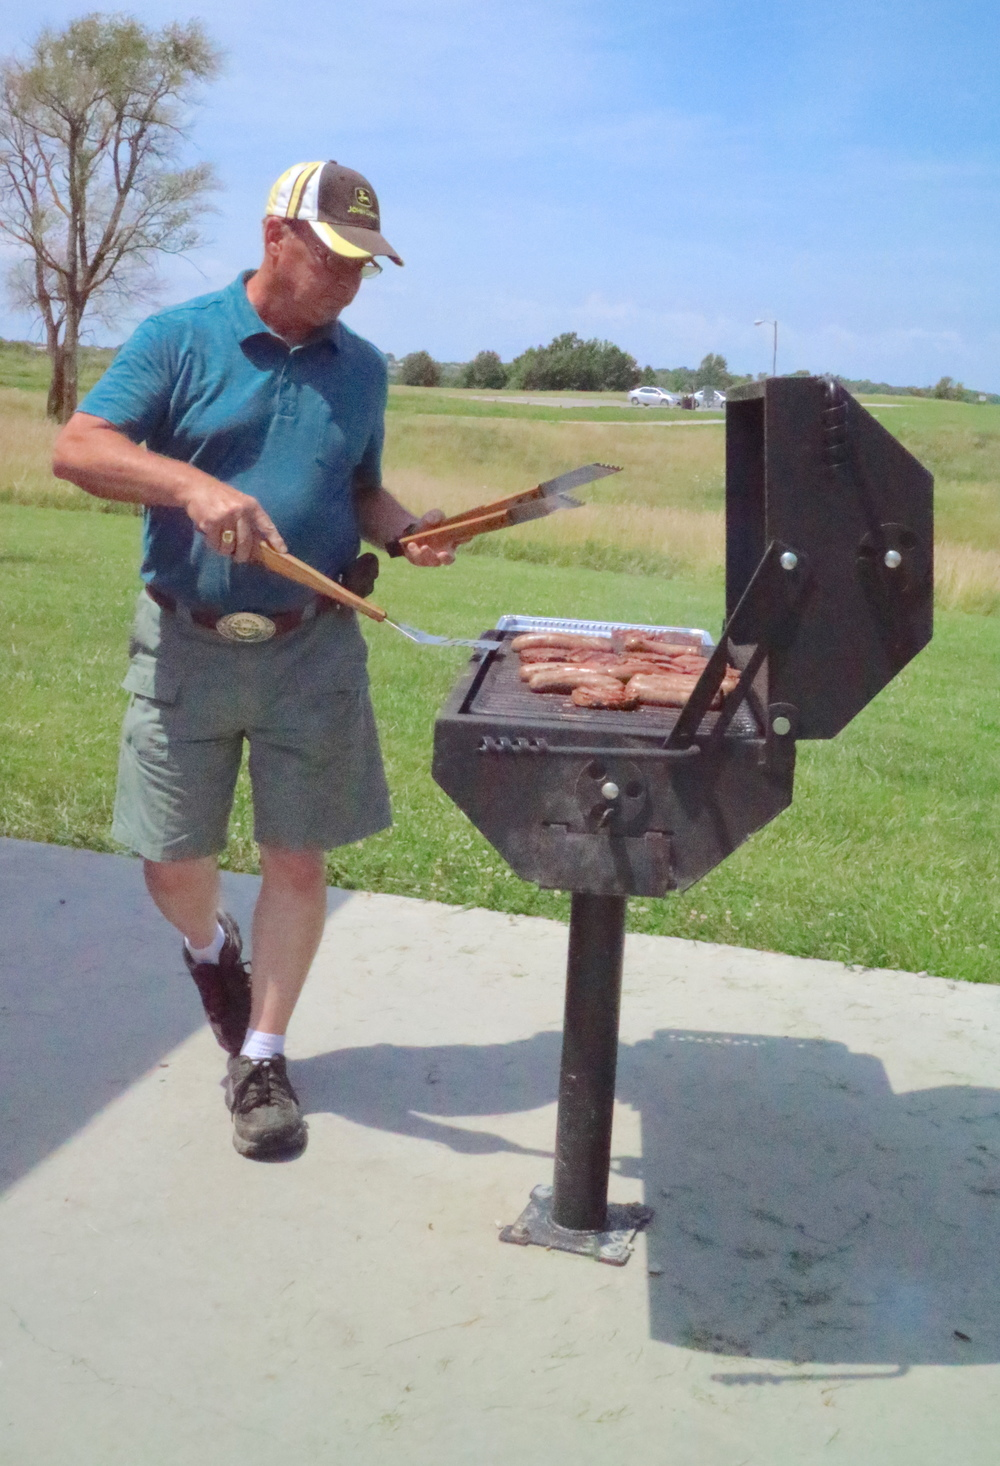 Grillmaster  Mike Kennedy  in action.  Mike  and  Nancy  hauled multiple huge coolers, BBQ supplies, tools, water, soda and brats and burgers!